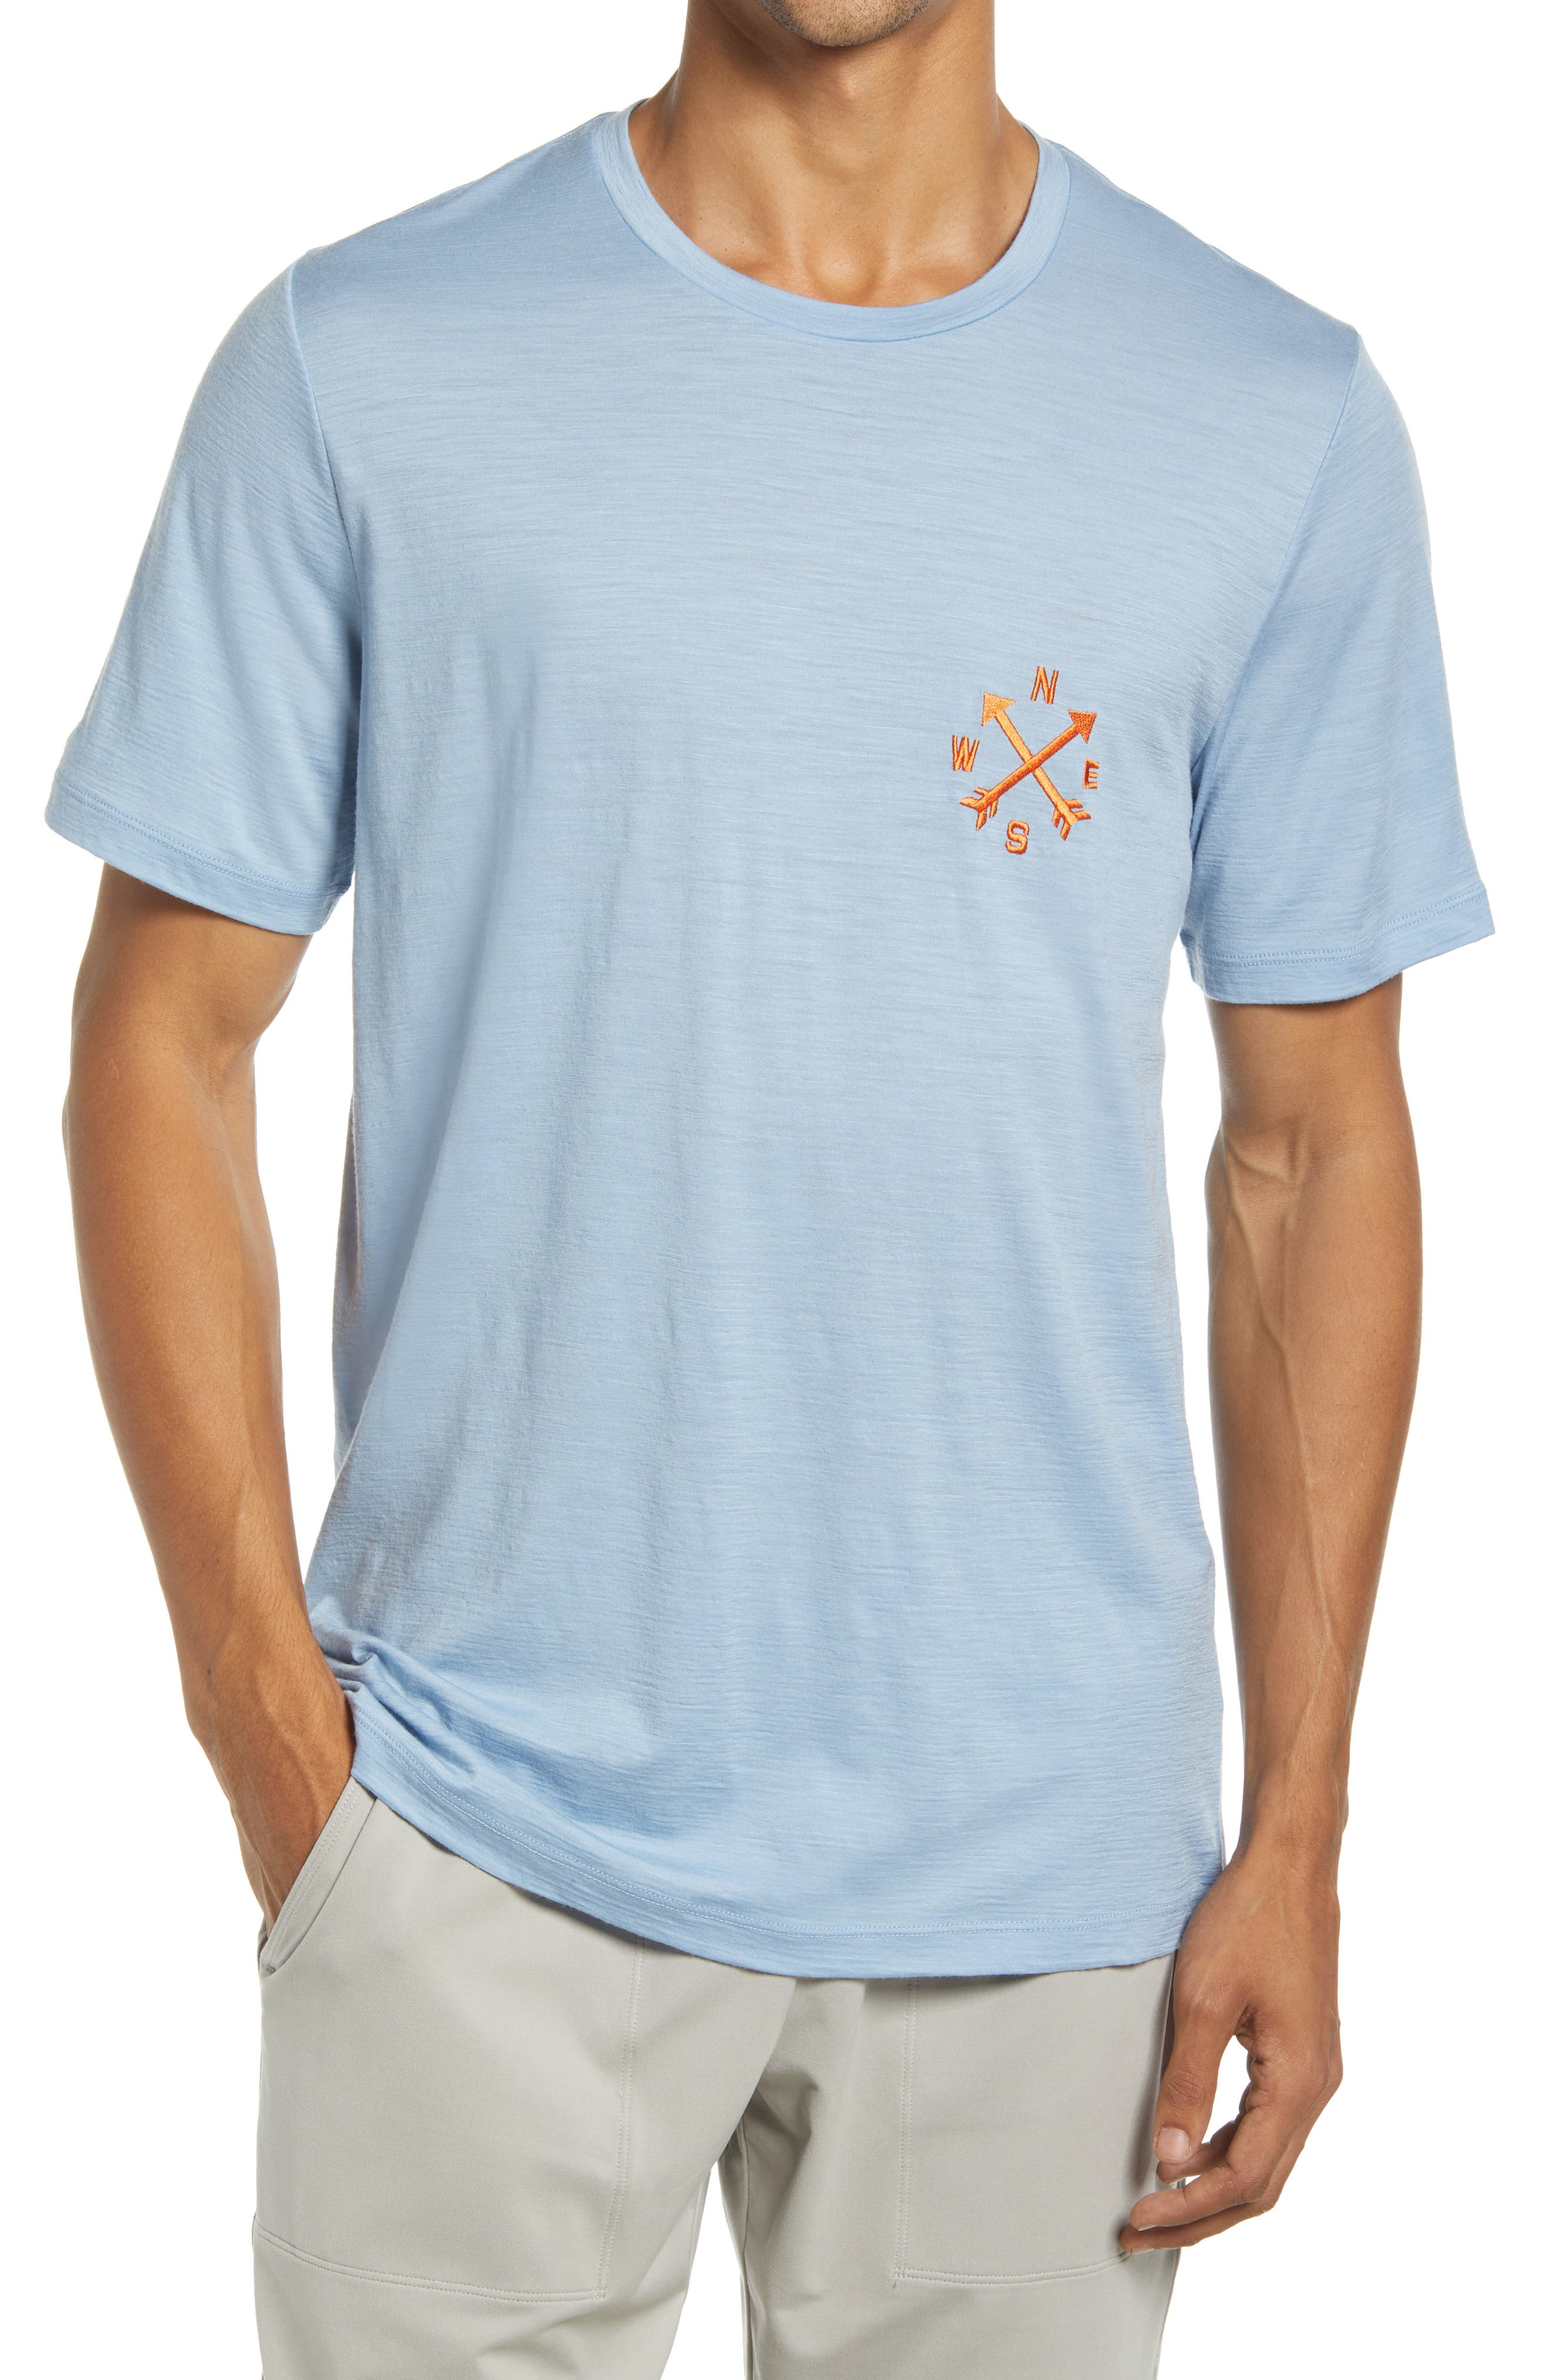 Tech Lite Ii Nonetwork Embroidered T-Shirt